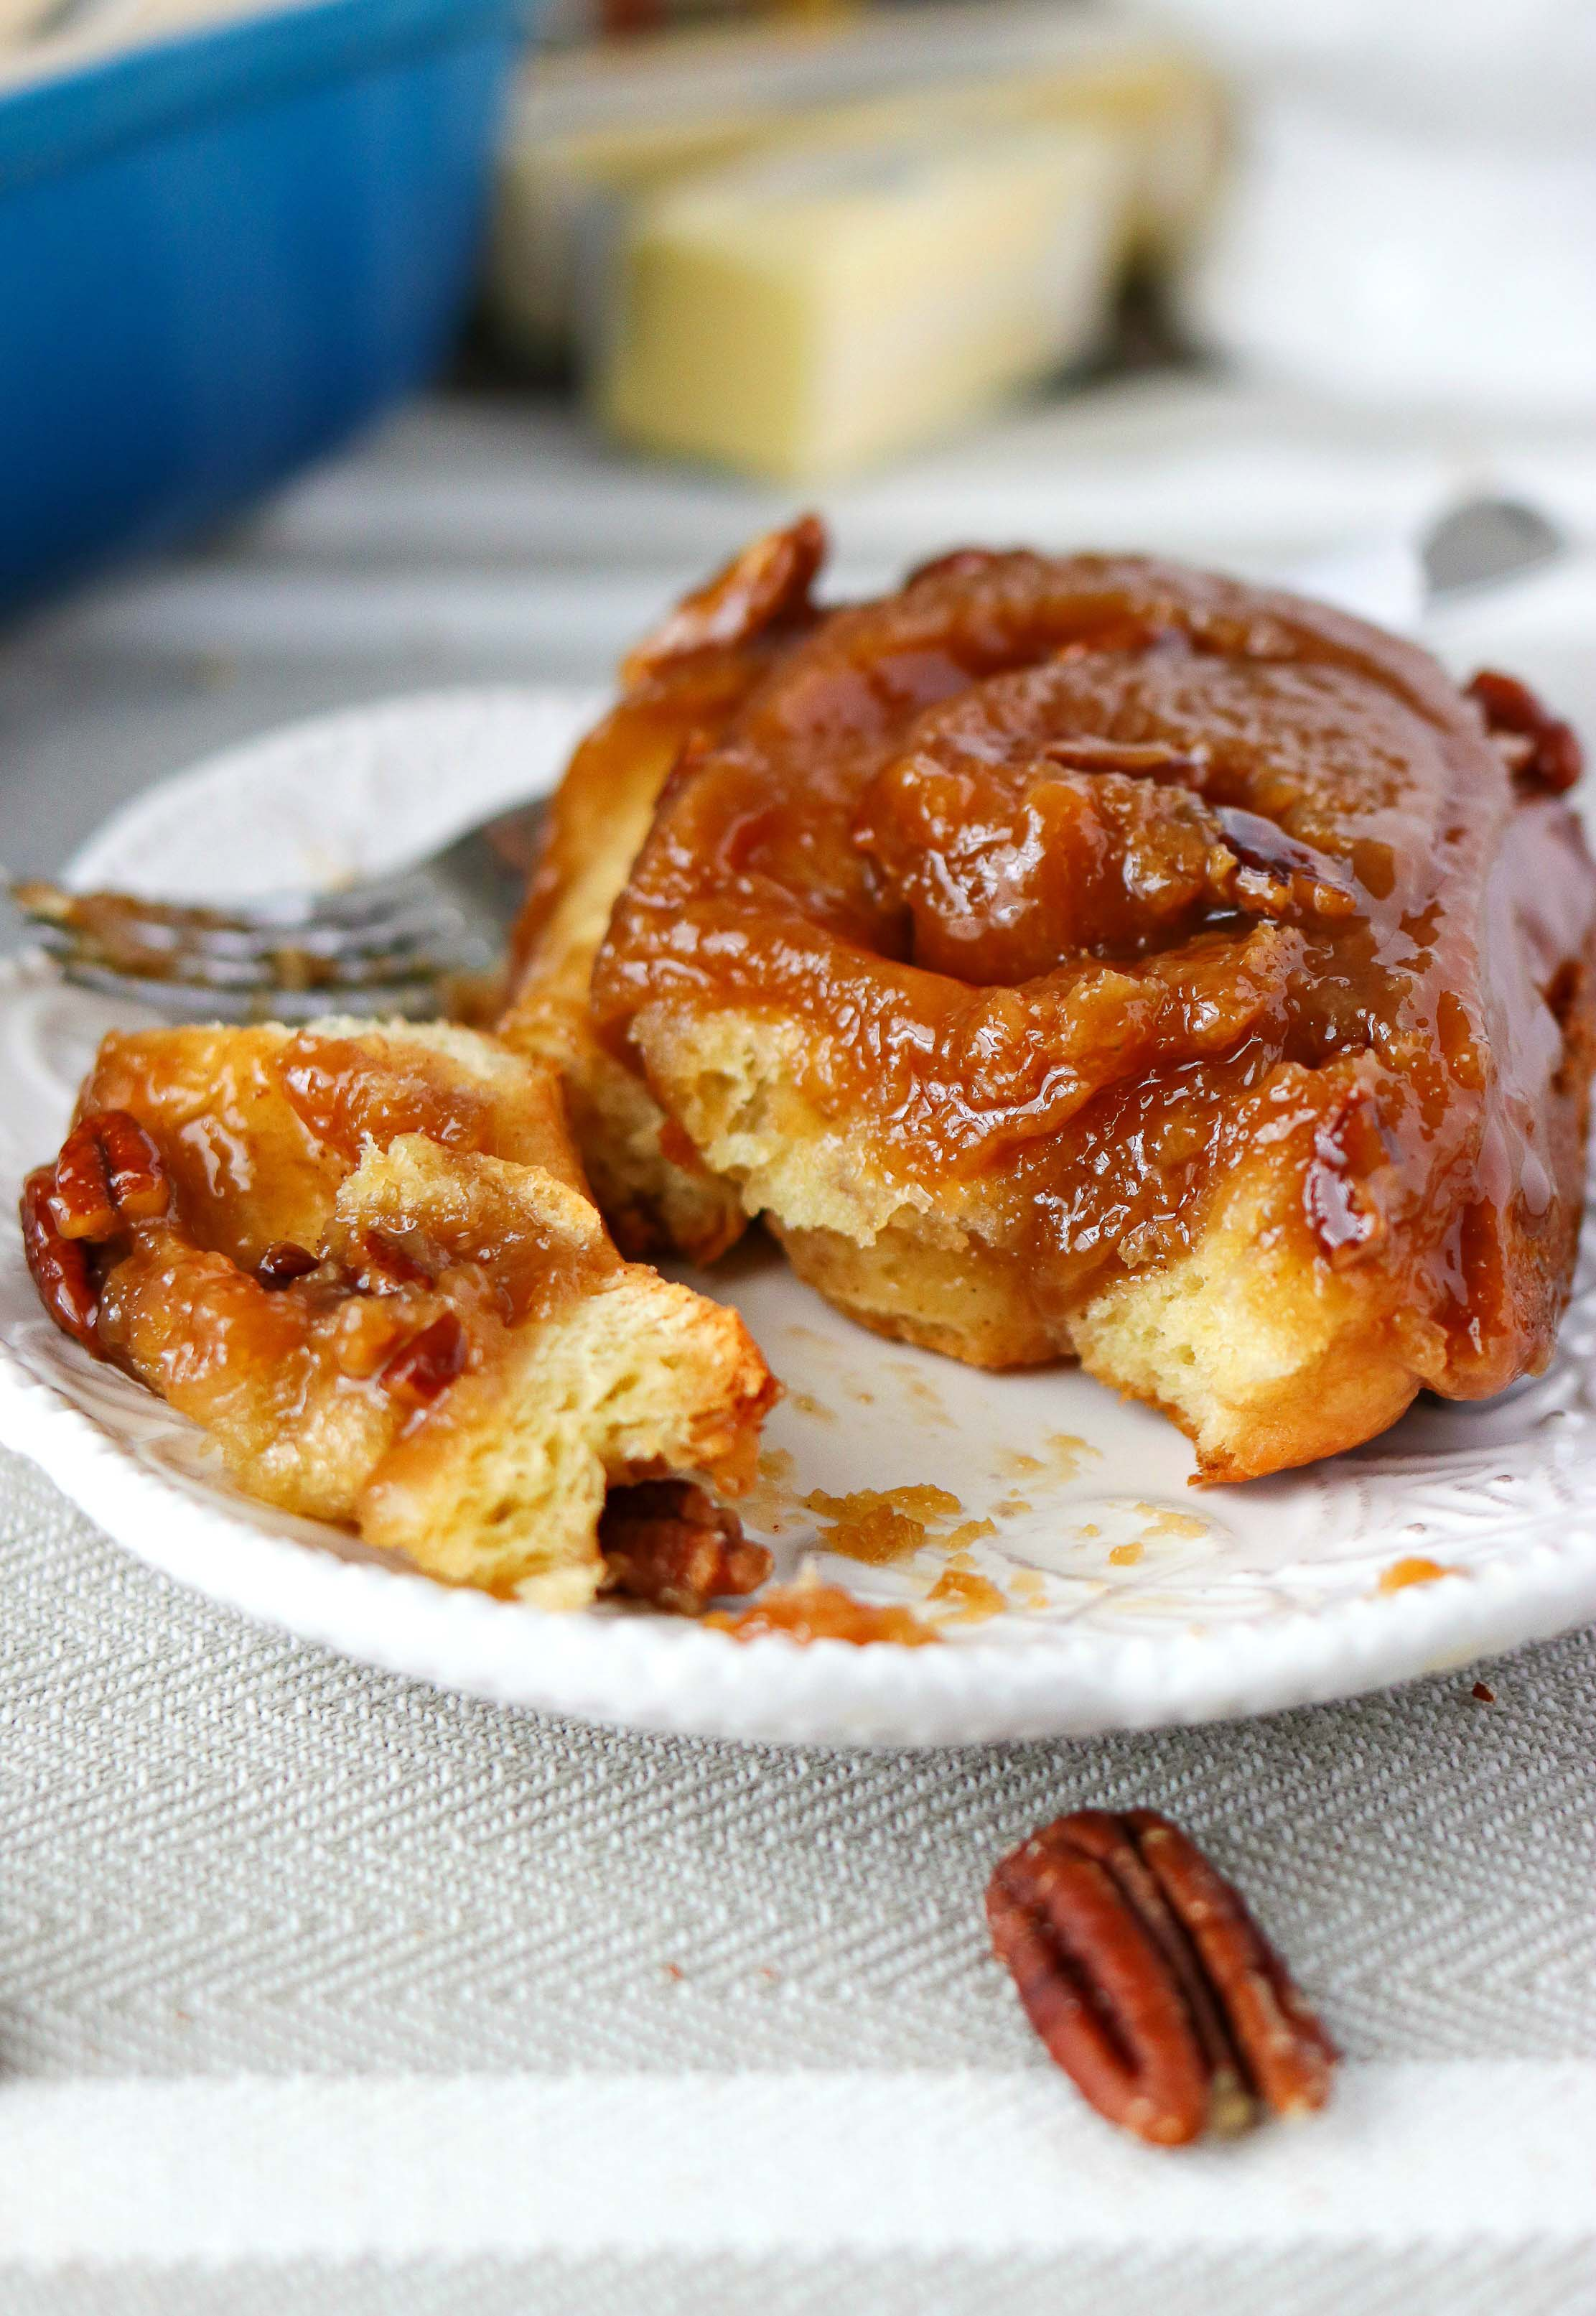 Pecan Sticky Buns - A super ooey, gooey, sticky bun made with brioche dough and tons of brown sugar and crunchy pecans. The flavor and texture of these buns will blow you away!